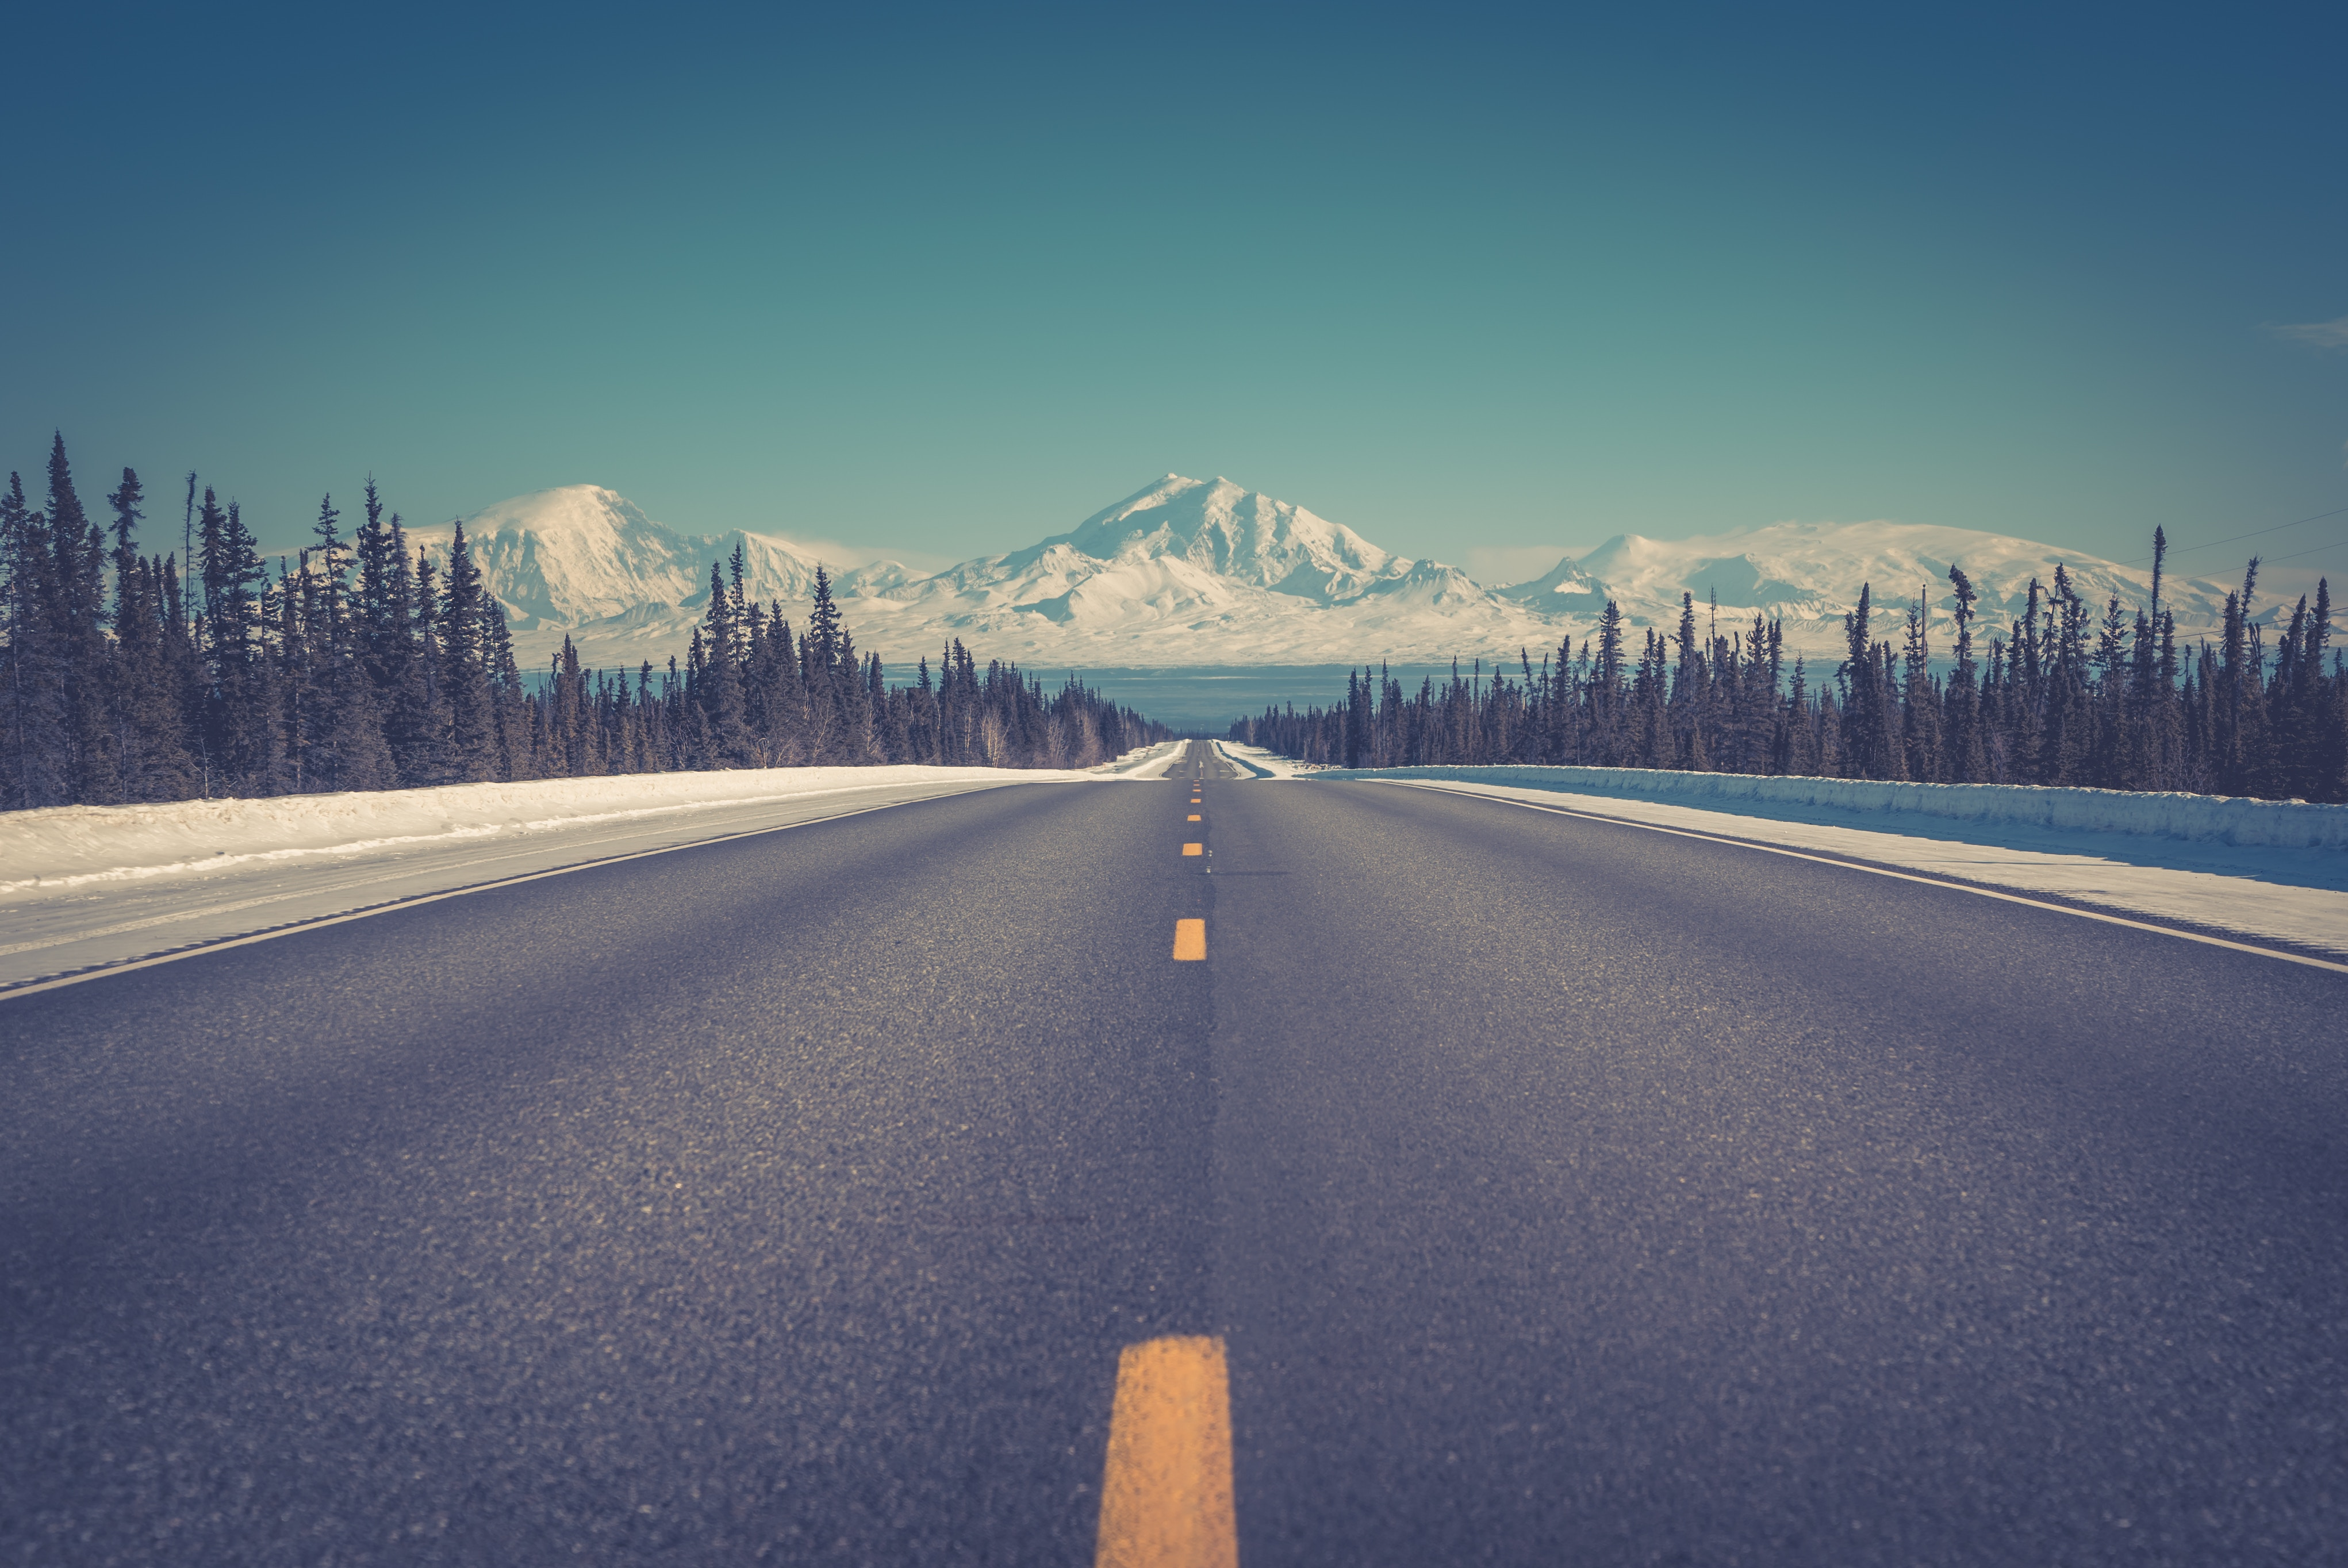 Road To Mountains In Winter Wallpaper Id3356